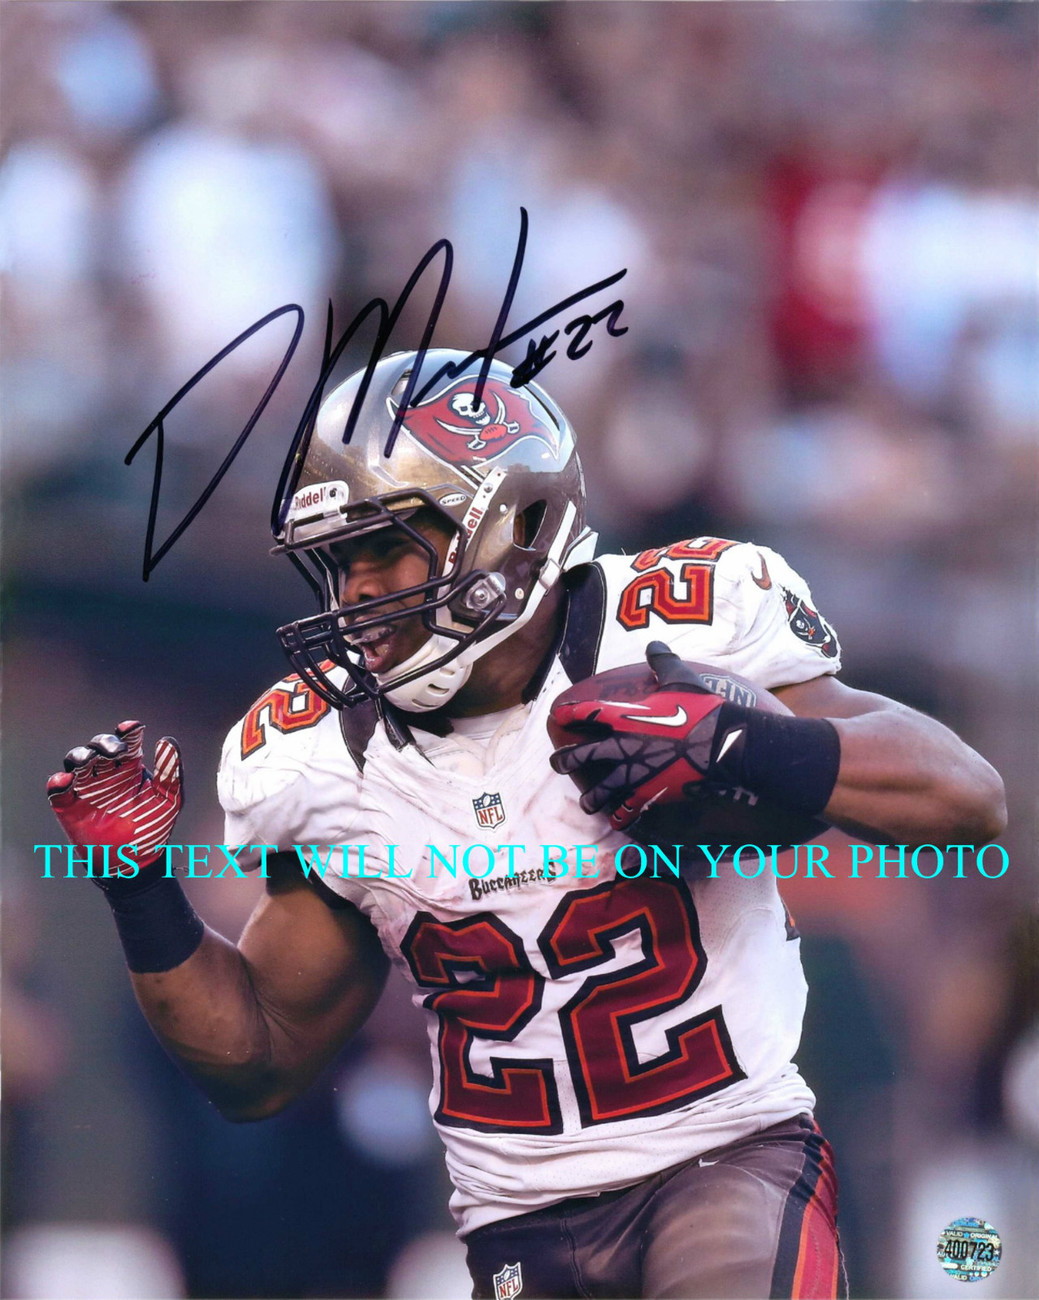 Primary image for DOUG MARTIN AUTOGRAPHED AUTO 8x10 RP PHOTO TAMPA BAY BUCCANEERS